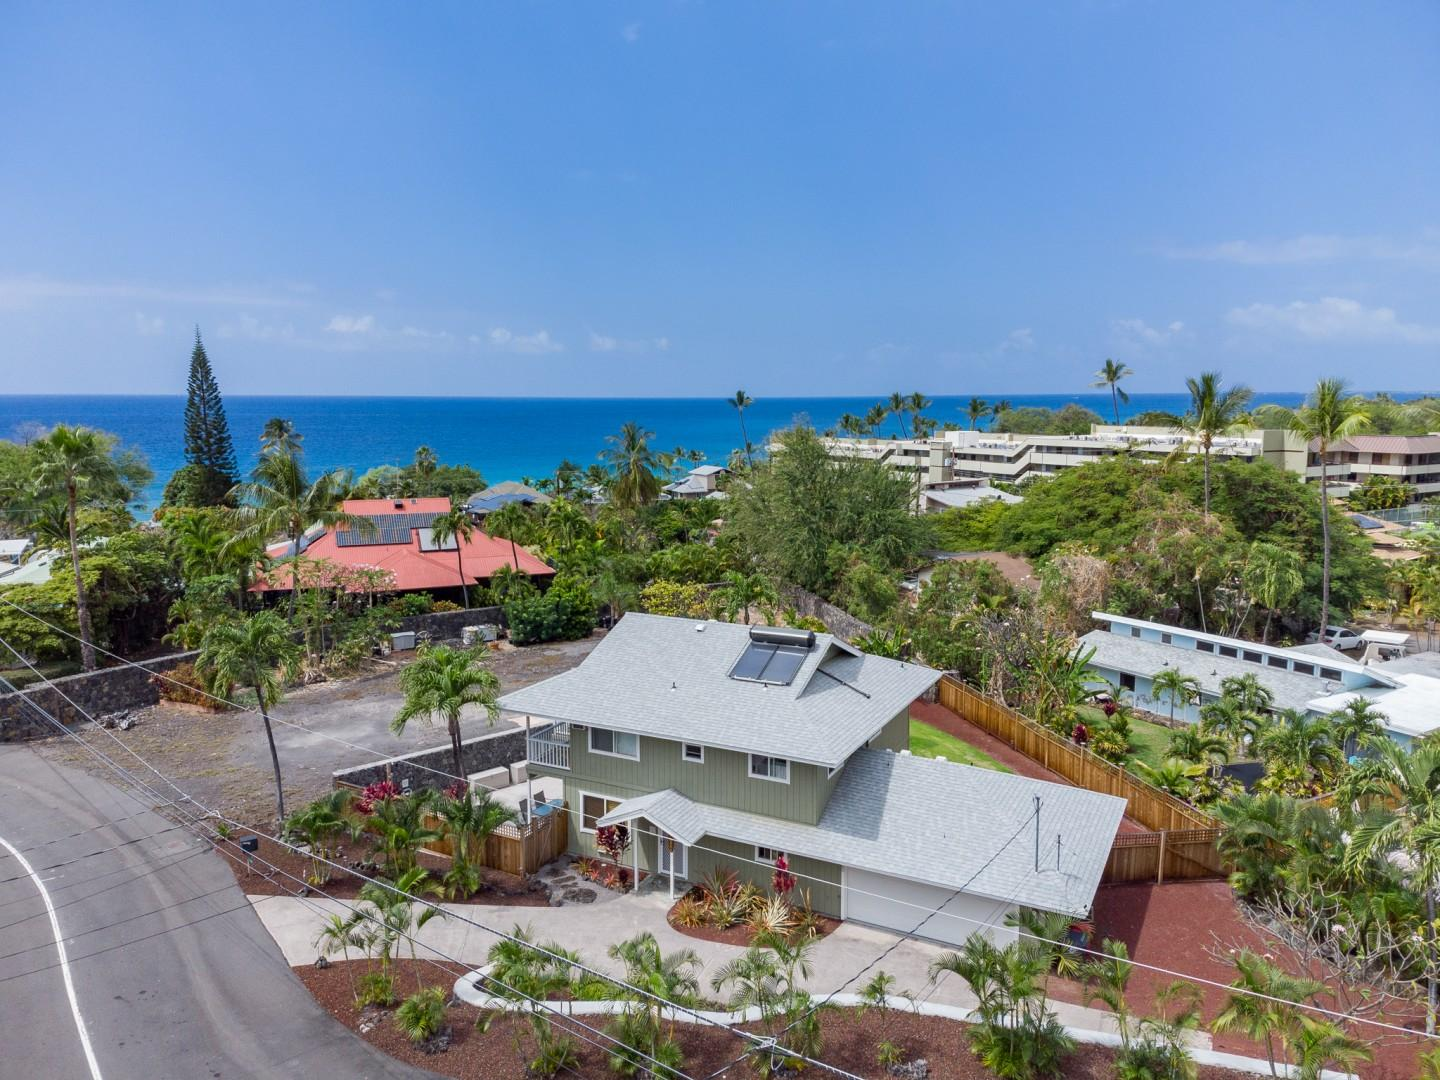 Aerial views from the house